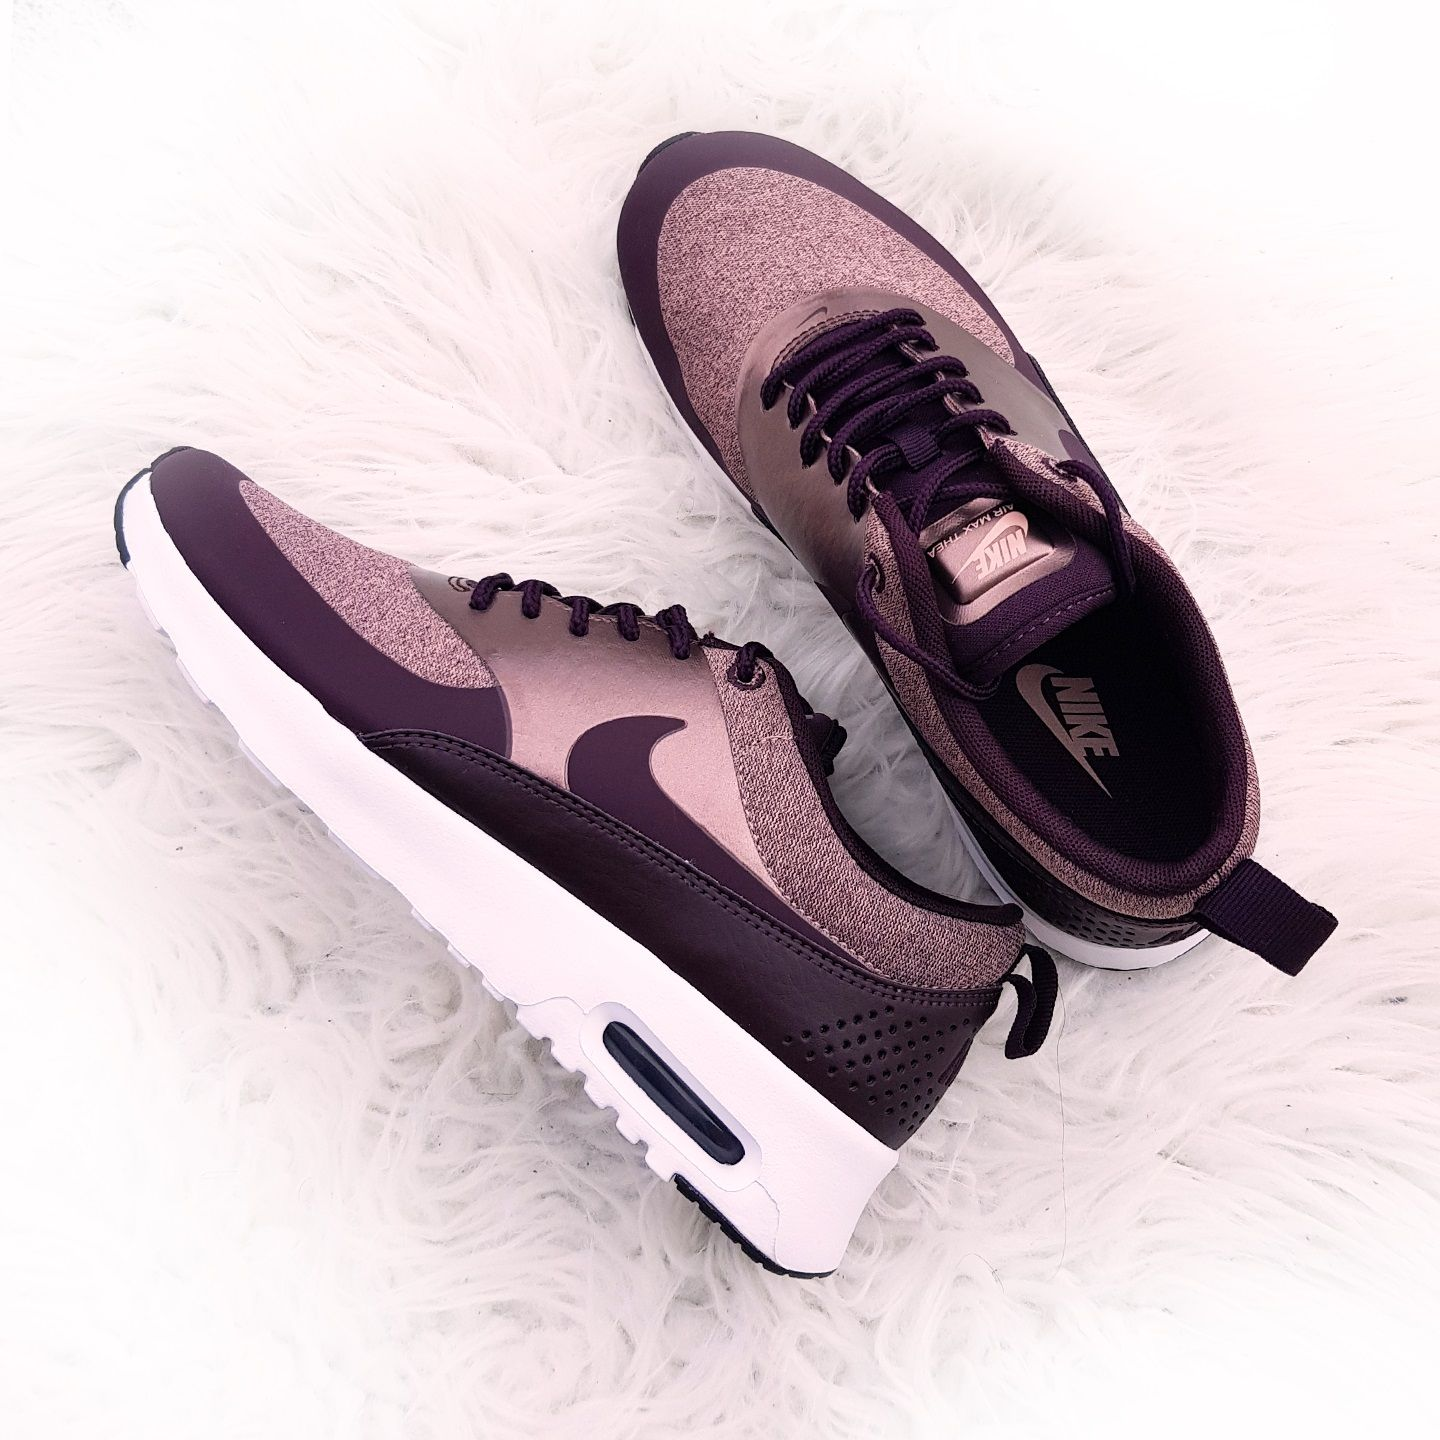 4093711fe404a4 Nike Air Max Thea Knit - Port Wine Particle Pink Schwarz Metallic Mahogany